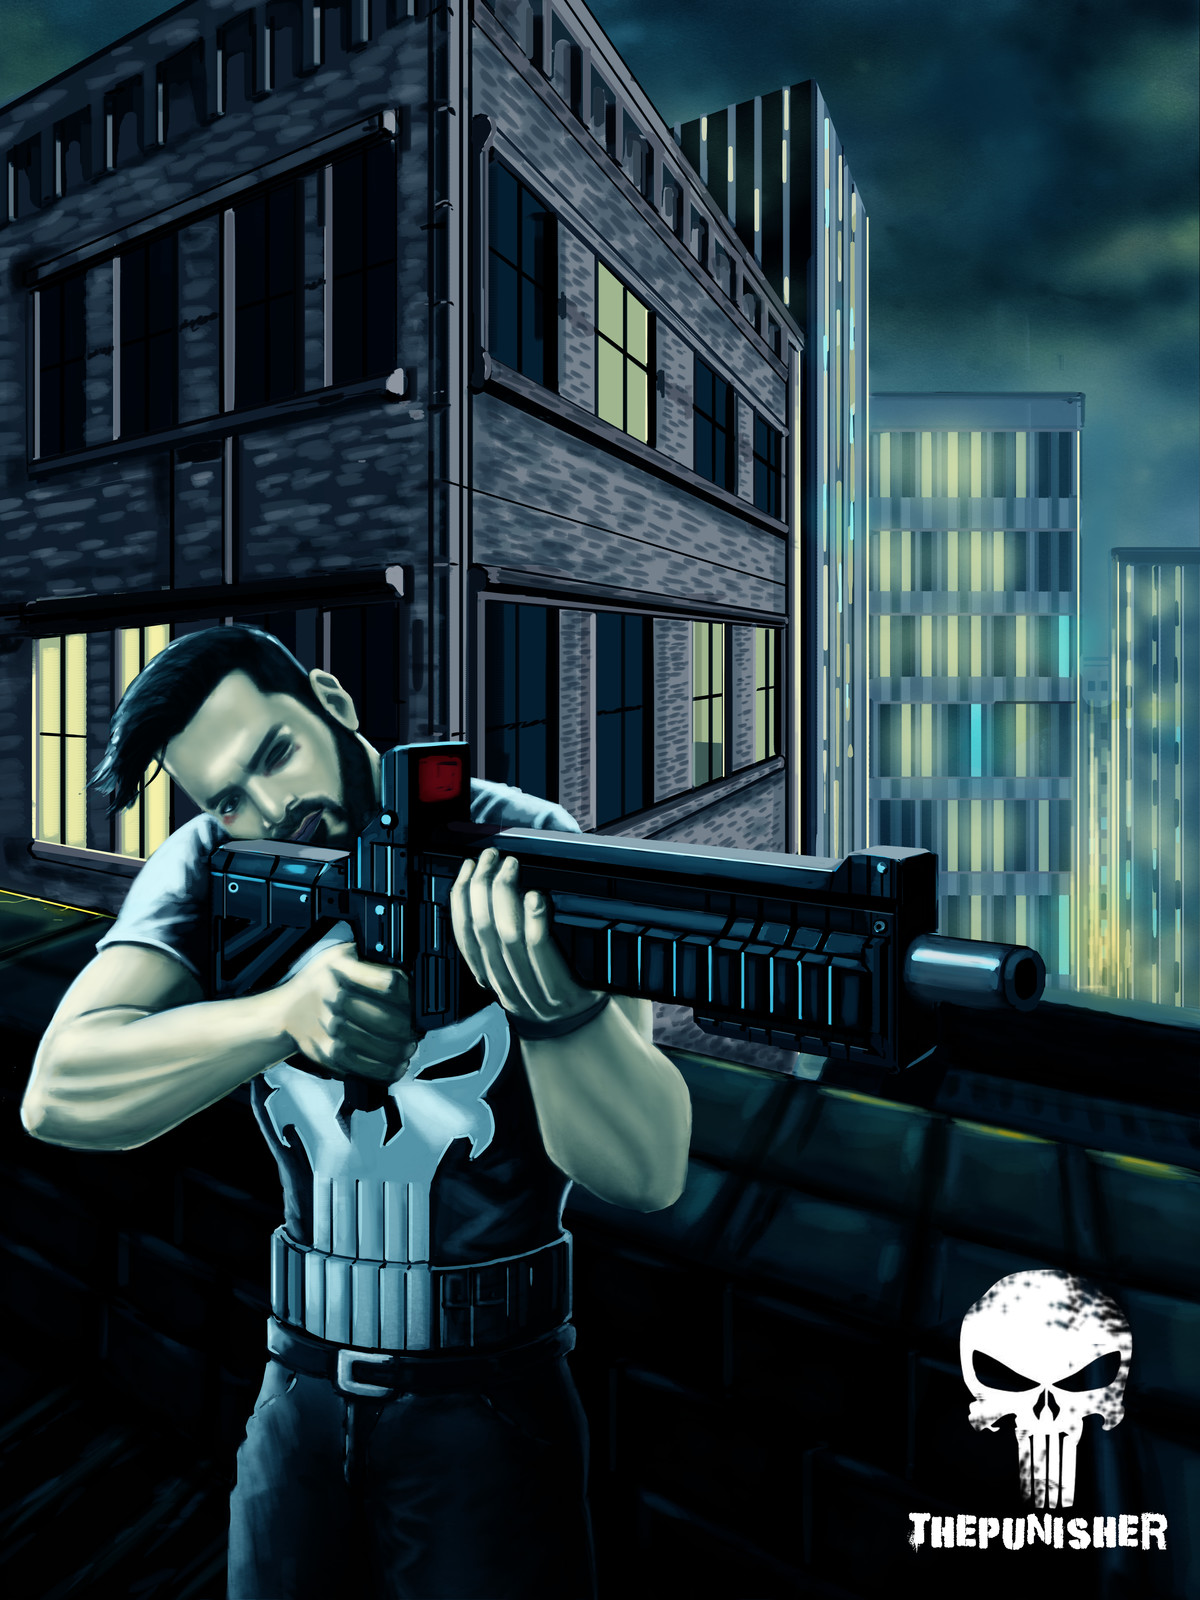 The Punisher  some fan art.